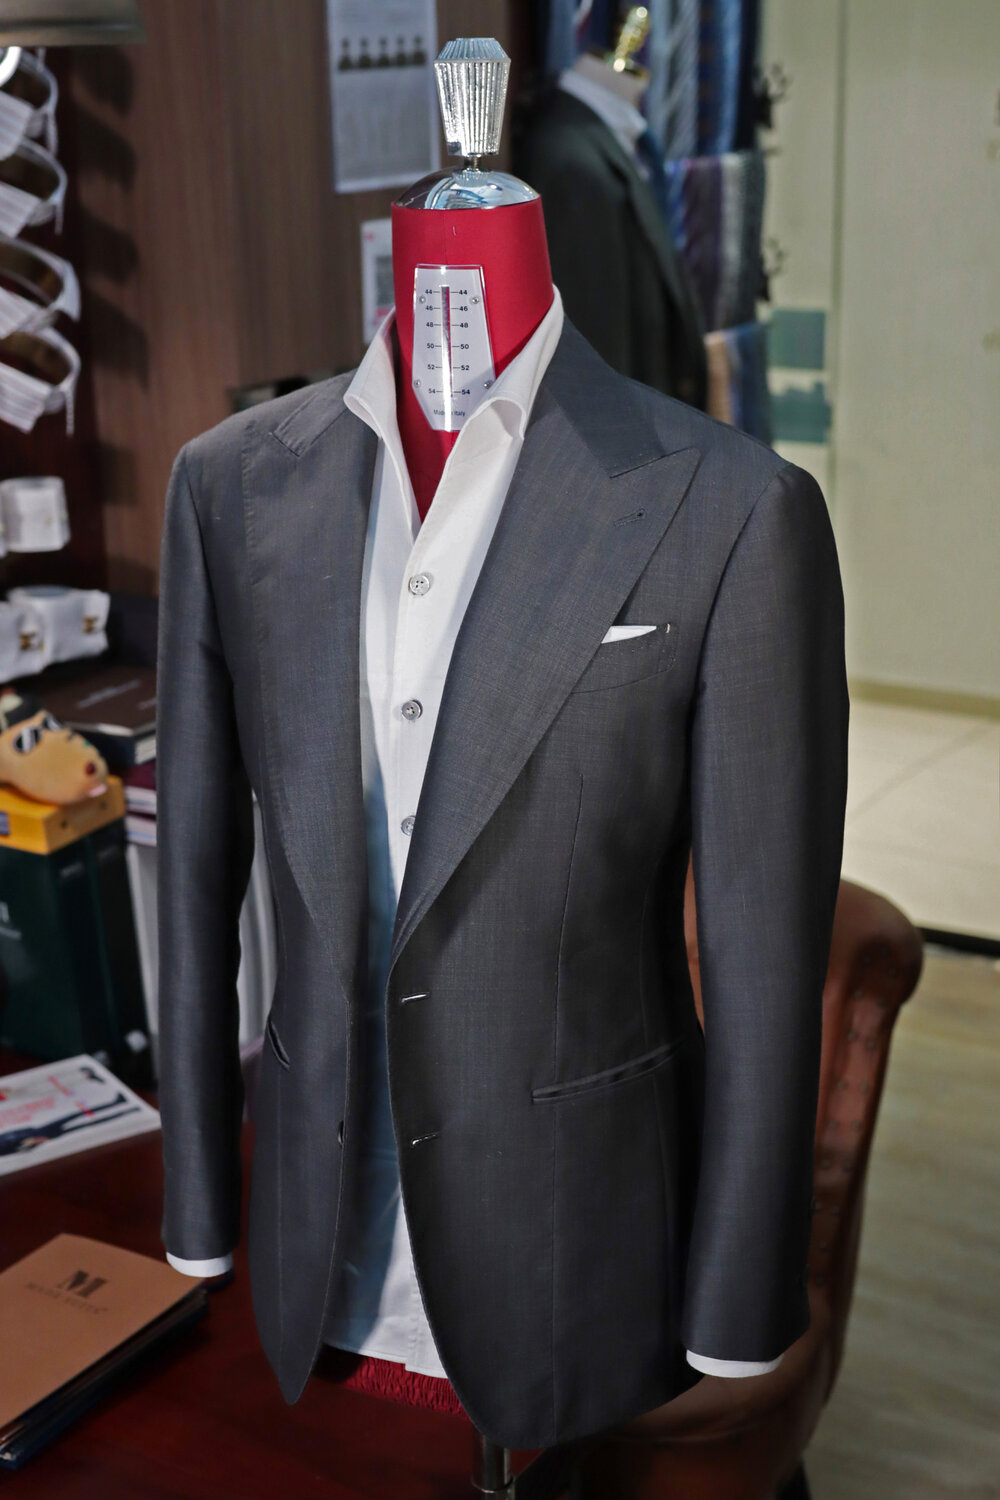 Hallyu Star | Tailor Made Suits Singapore Tailor Suits | Stylbiella Front.JPG